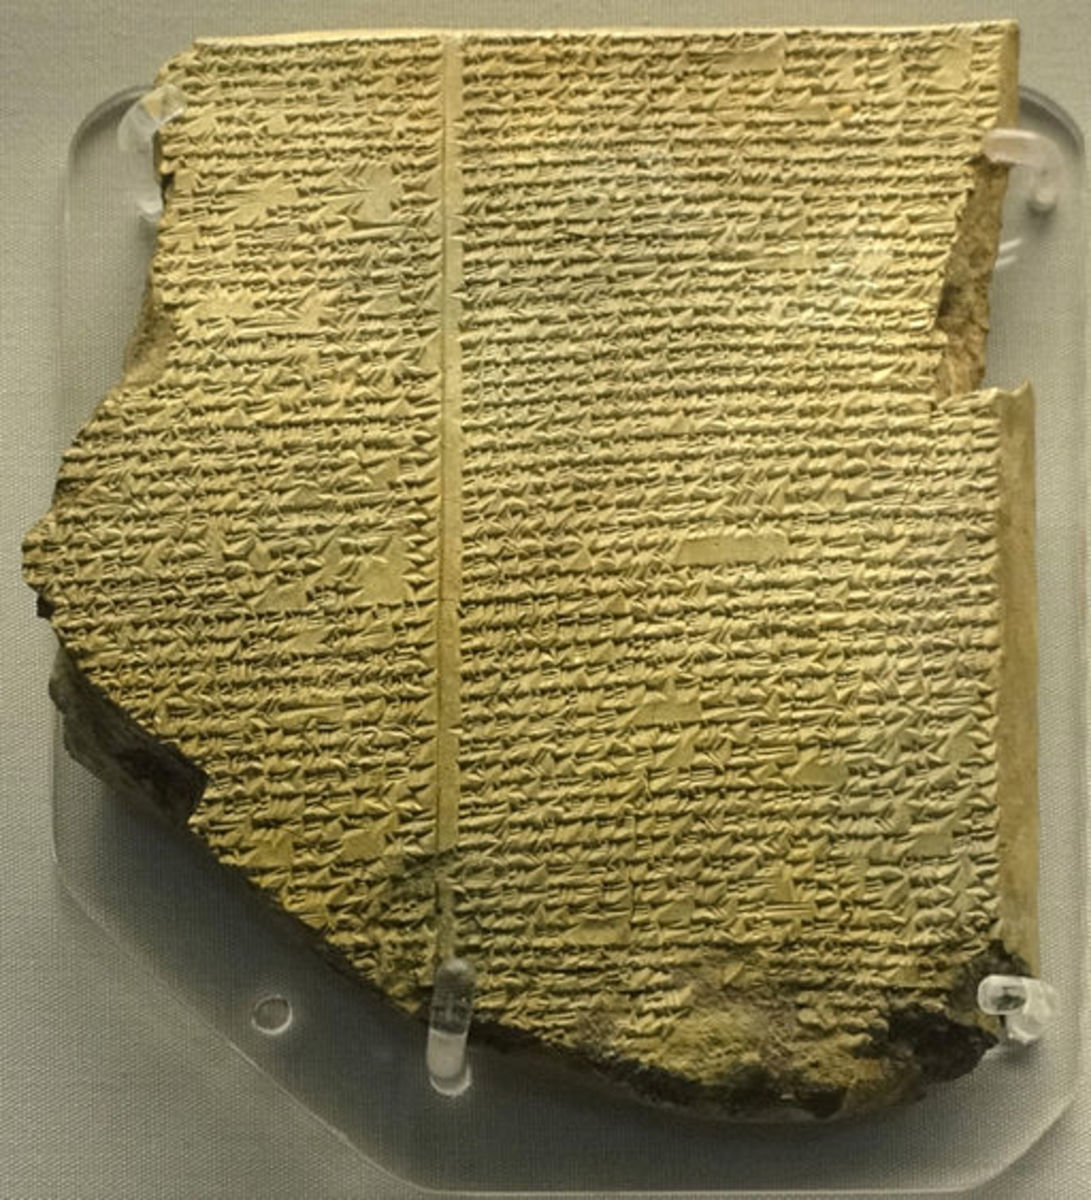 The cuneiform clay tablet holding the story of Uta-Napishti, who survived the Deluge. It was written over a thousand years before the Bible.